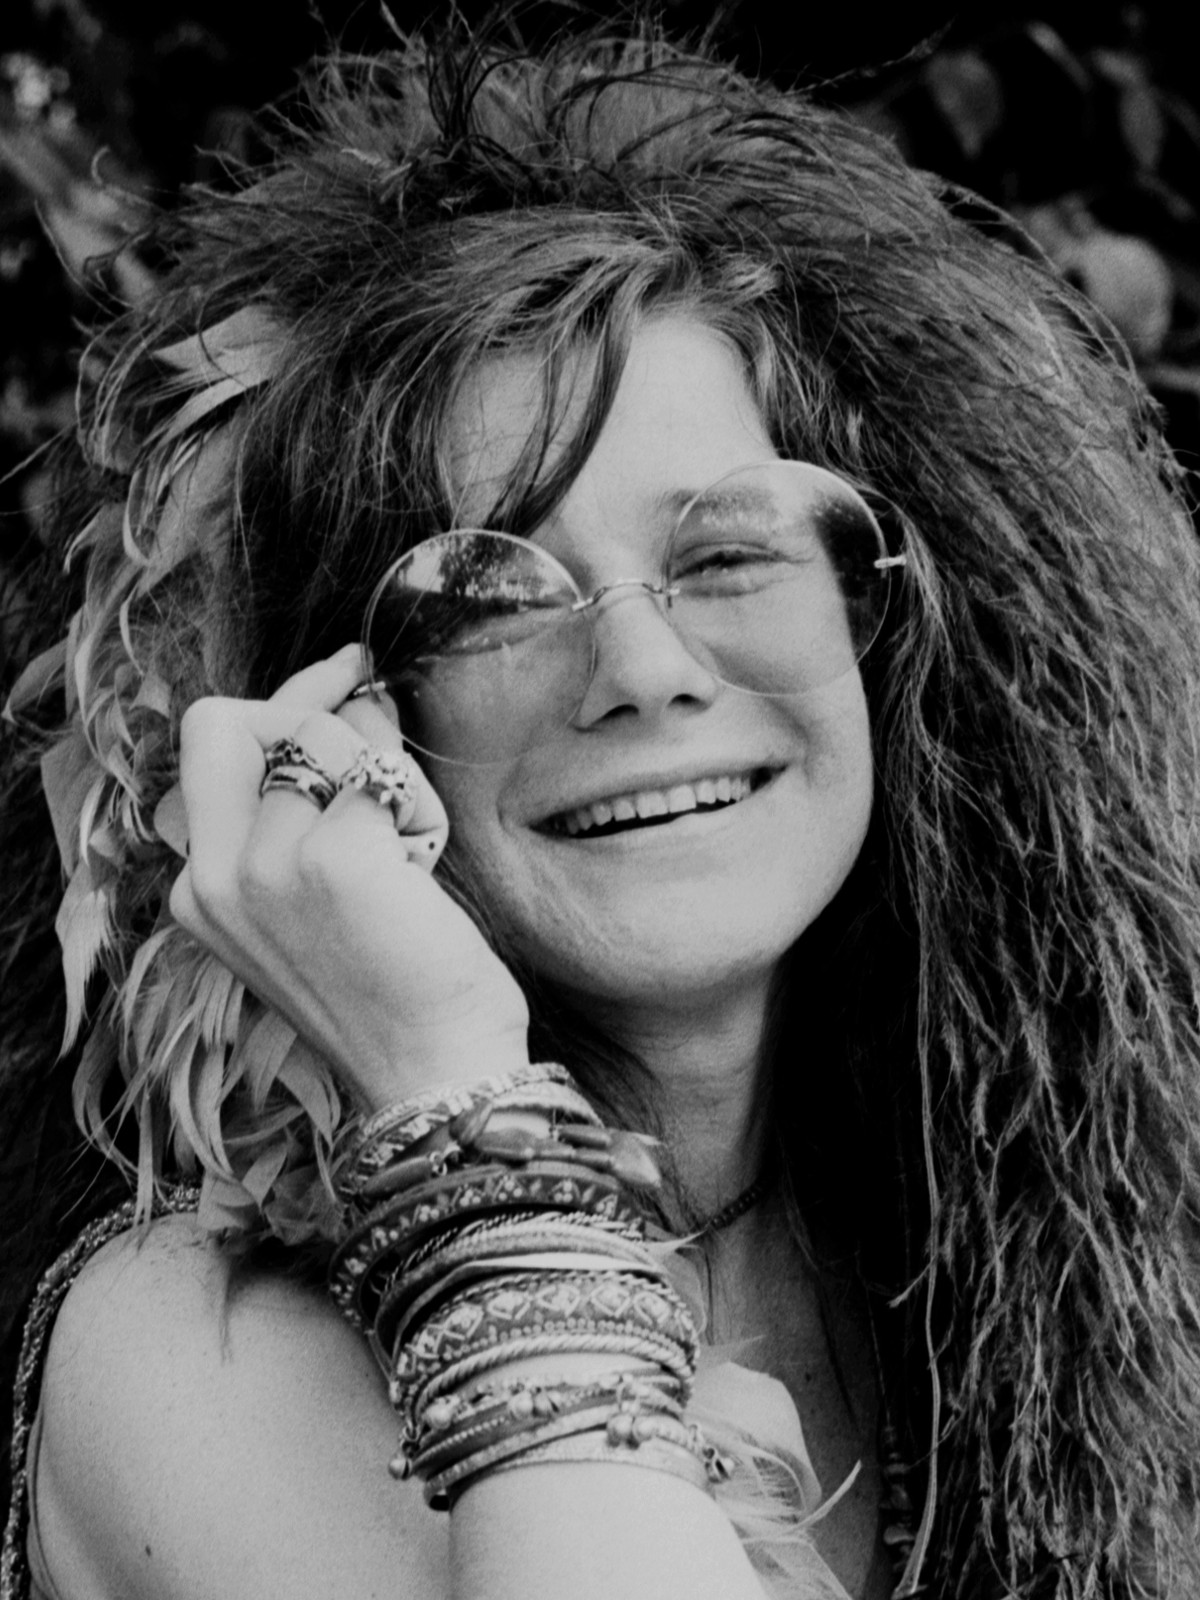 Let Janis Joplin Invide Your Home Decor With Its Uniqueness home decor Let Janis Joplin Invade Your Home Decor With Its Uniqueness Let Janis Joplin Invide Your Home Decor With Its Uniqueness